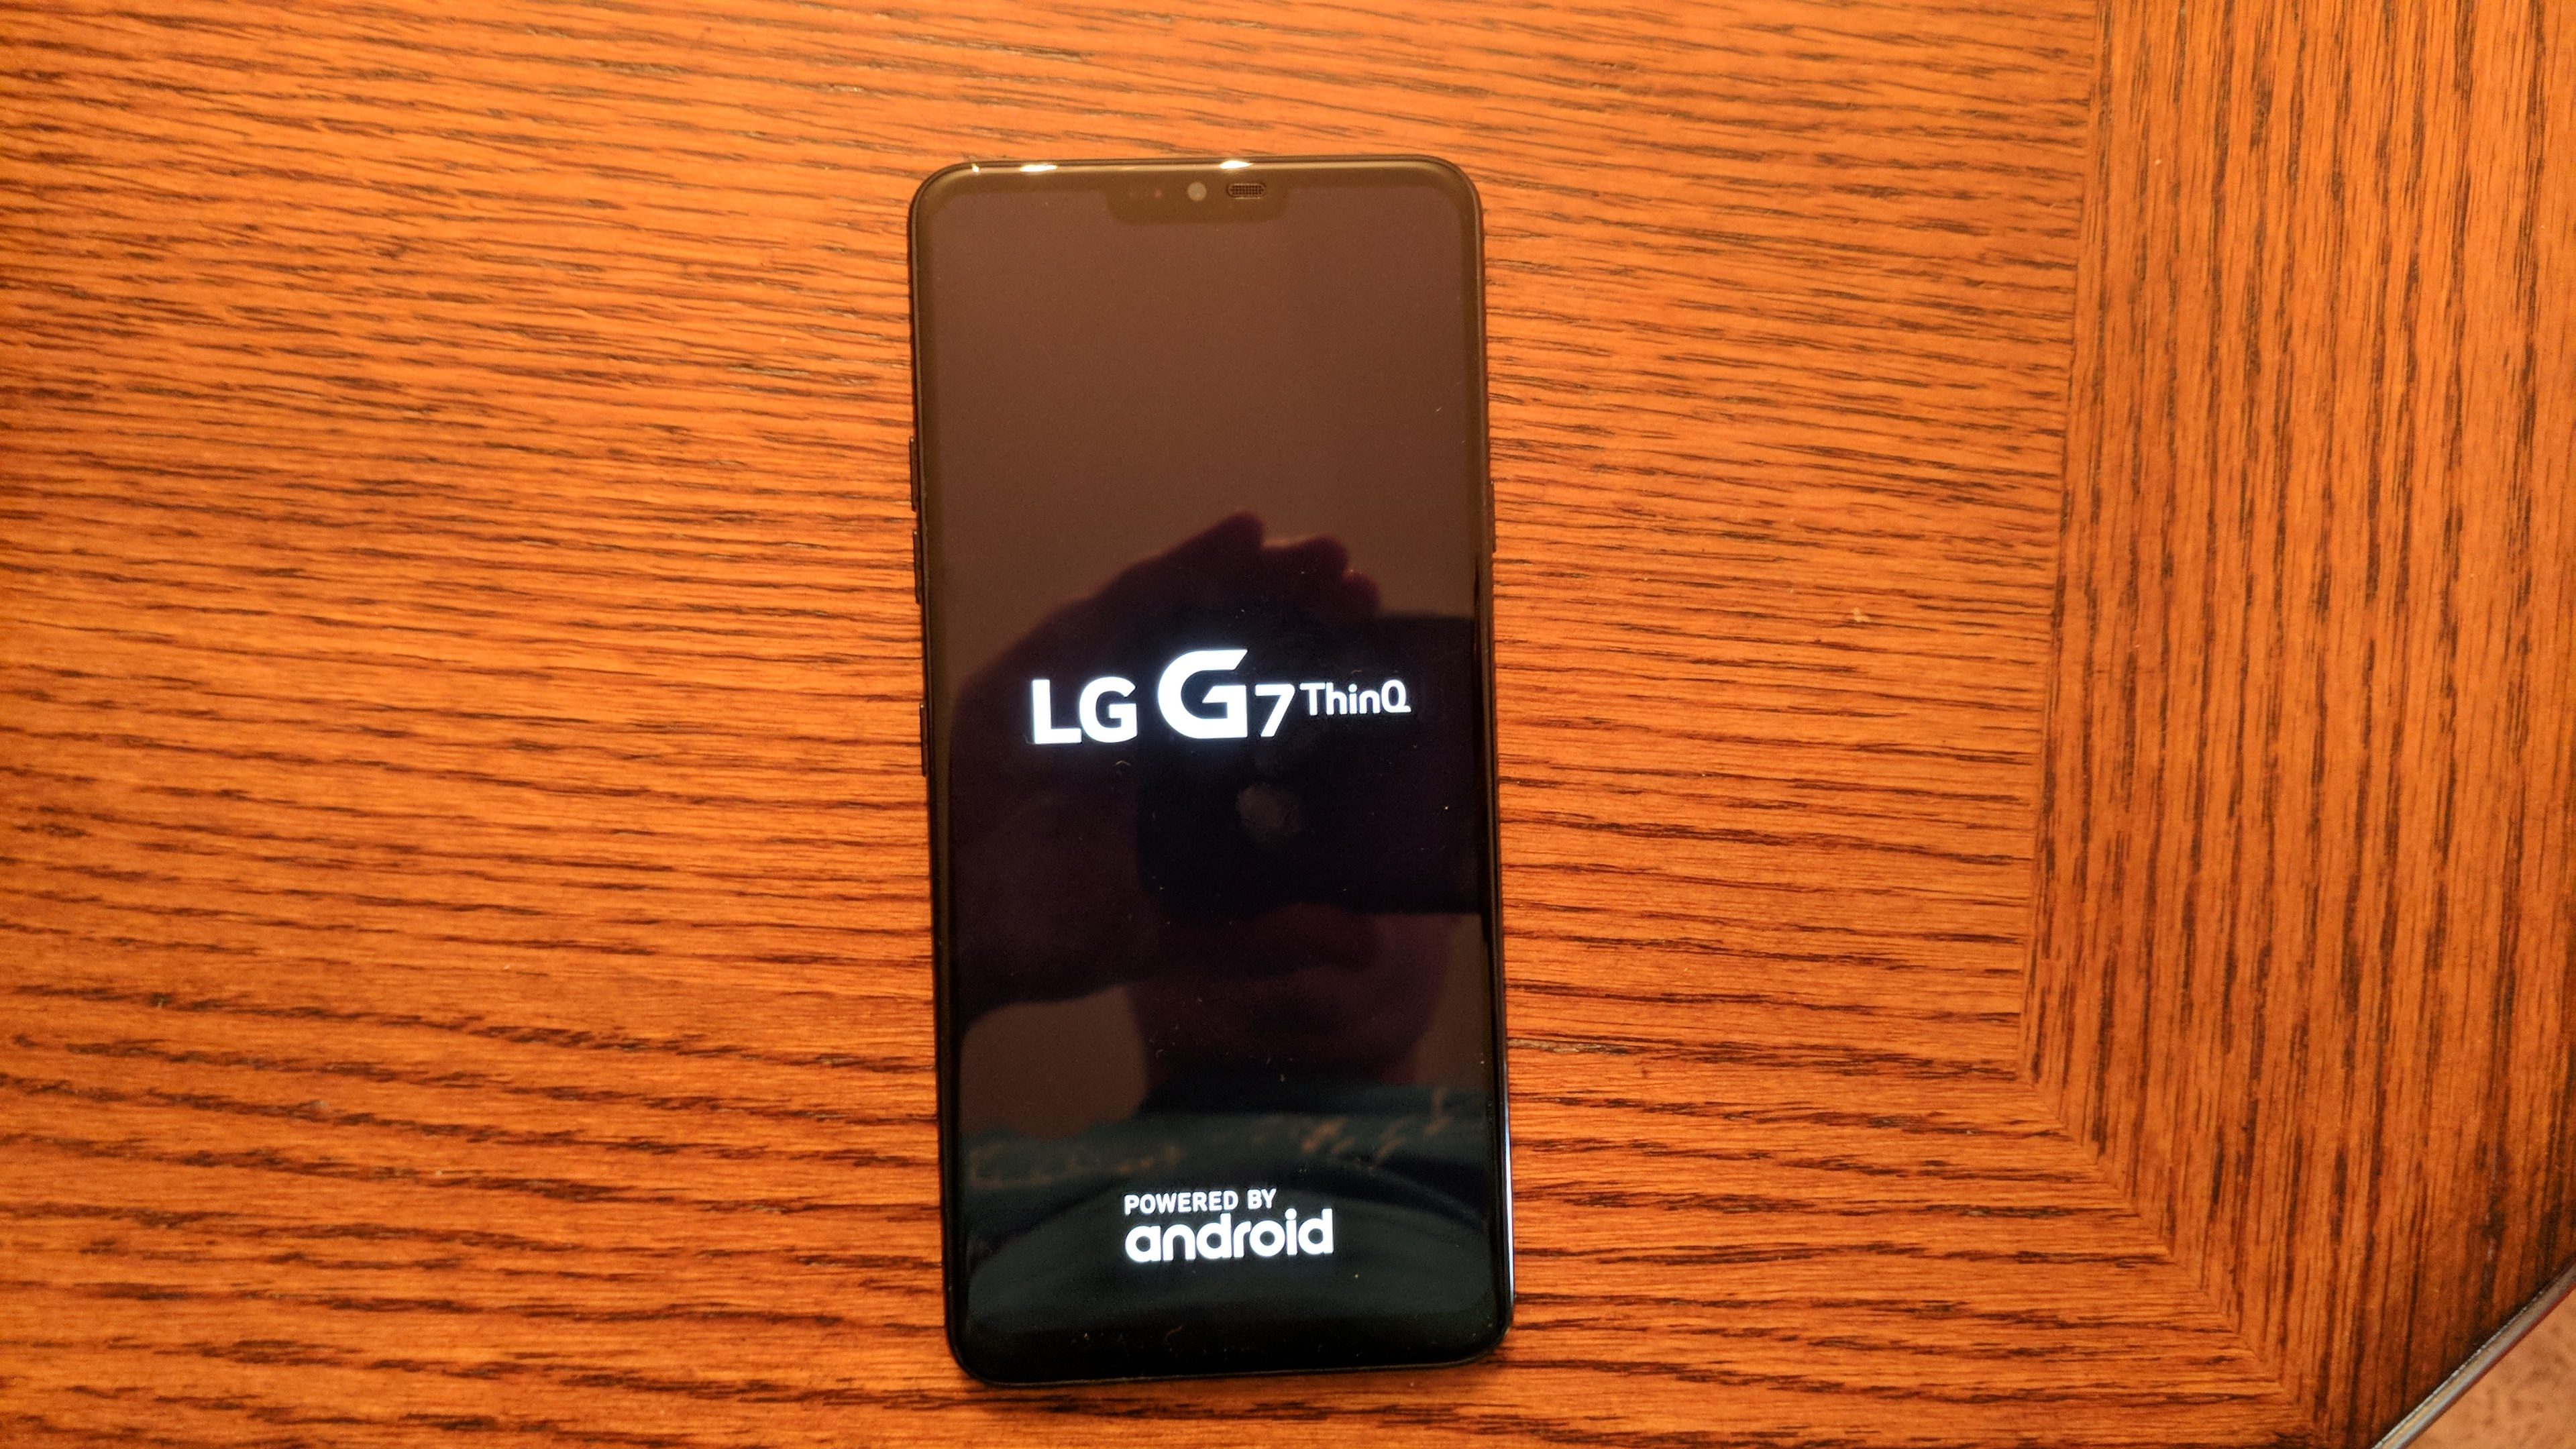 LG G7 ThinQ Review: Can it Take a Chunk out of the